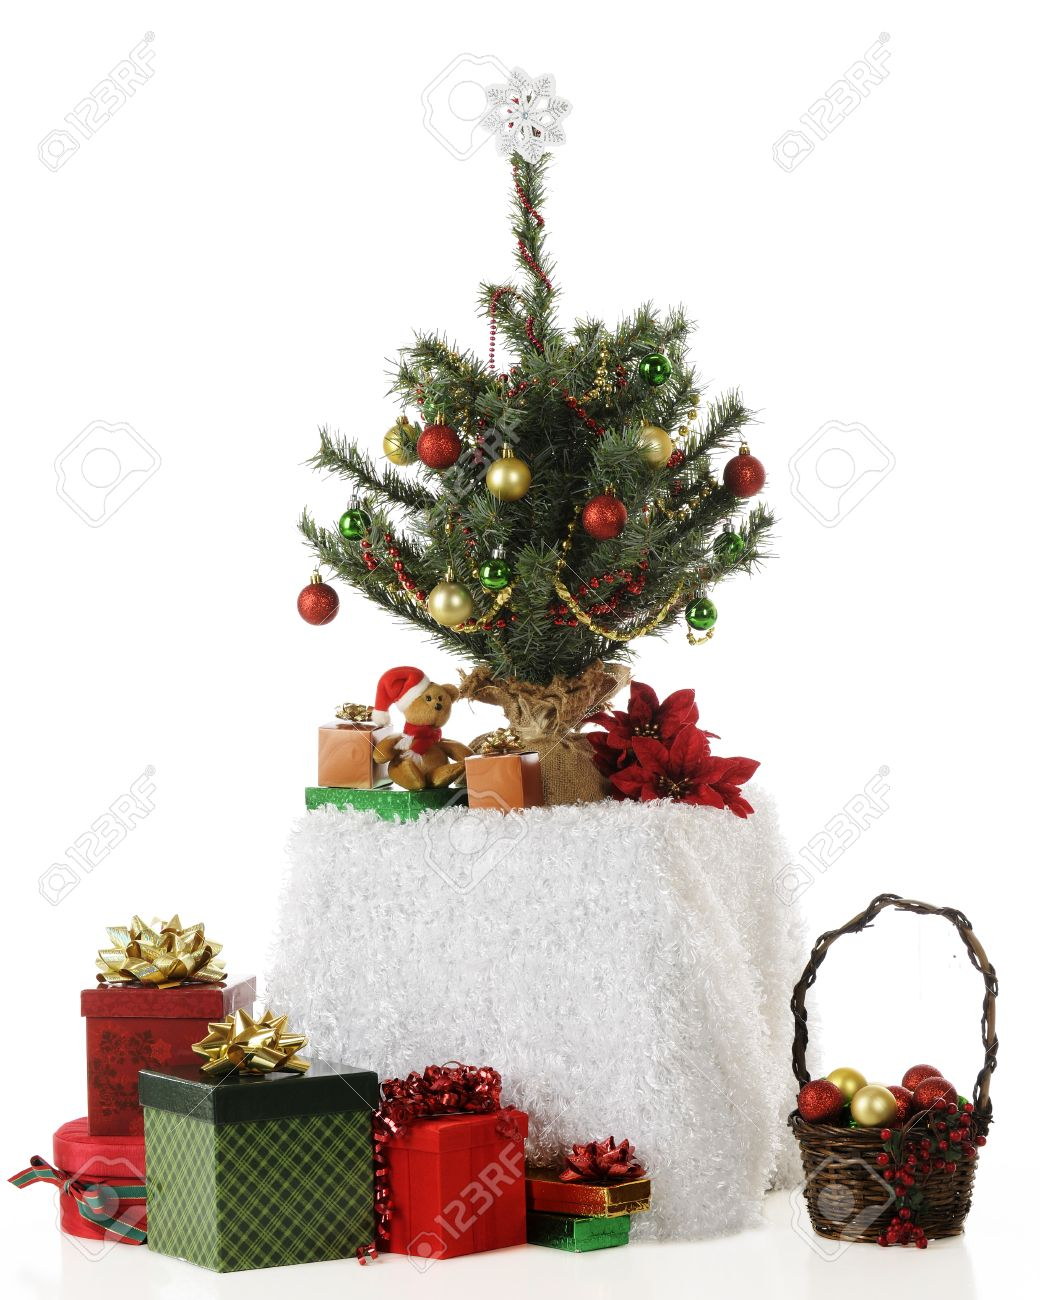 Tiny Christmas.A Tiny Christmas Tree On A Fluffy White Covered Table Surrounded